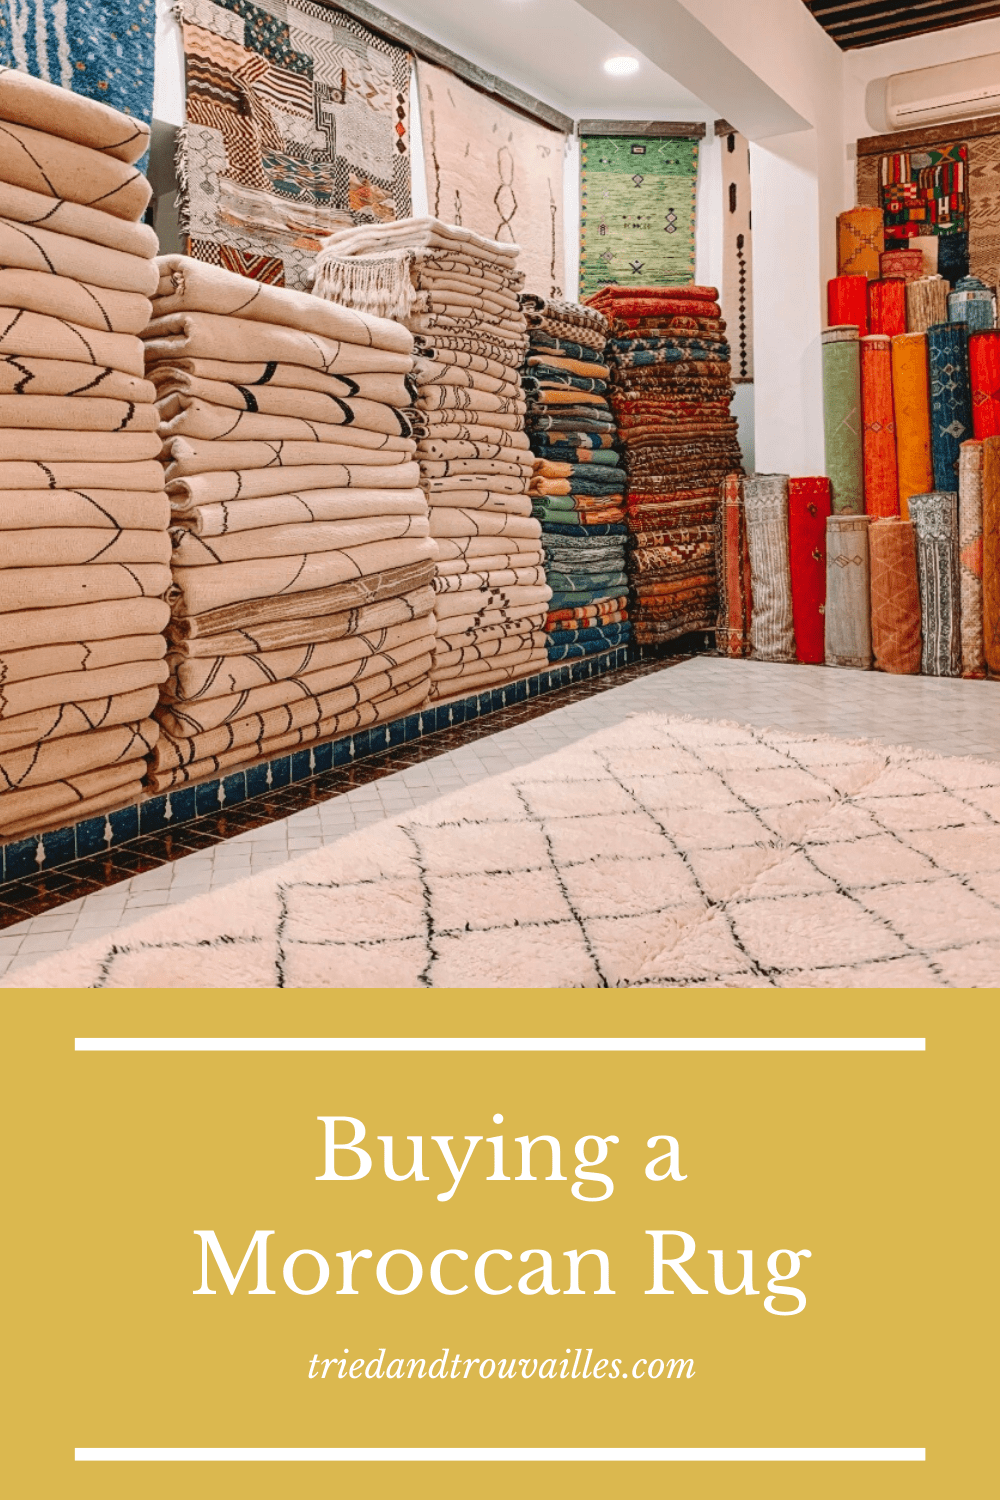 Buying a moroccan rug in marrakech 3 - Buying a Moroccan Rug